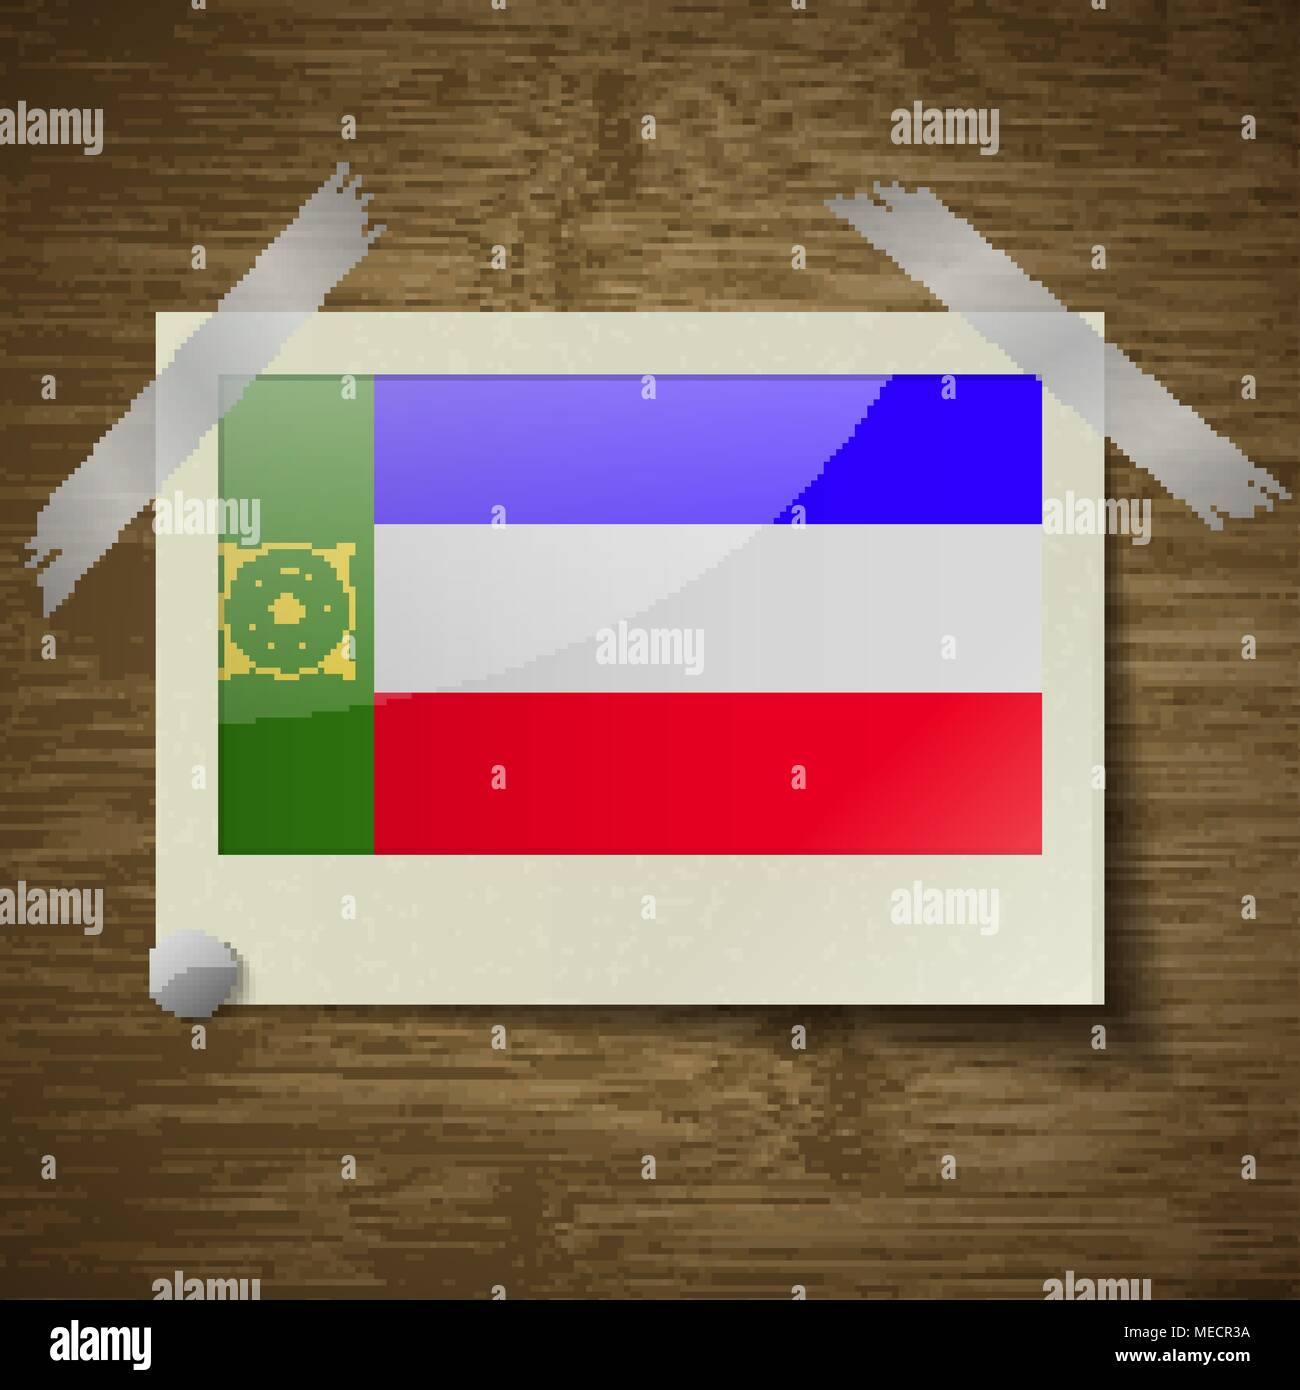 Flags of Khakassia at frame on wooden texture. Vector illustration - Stock Image